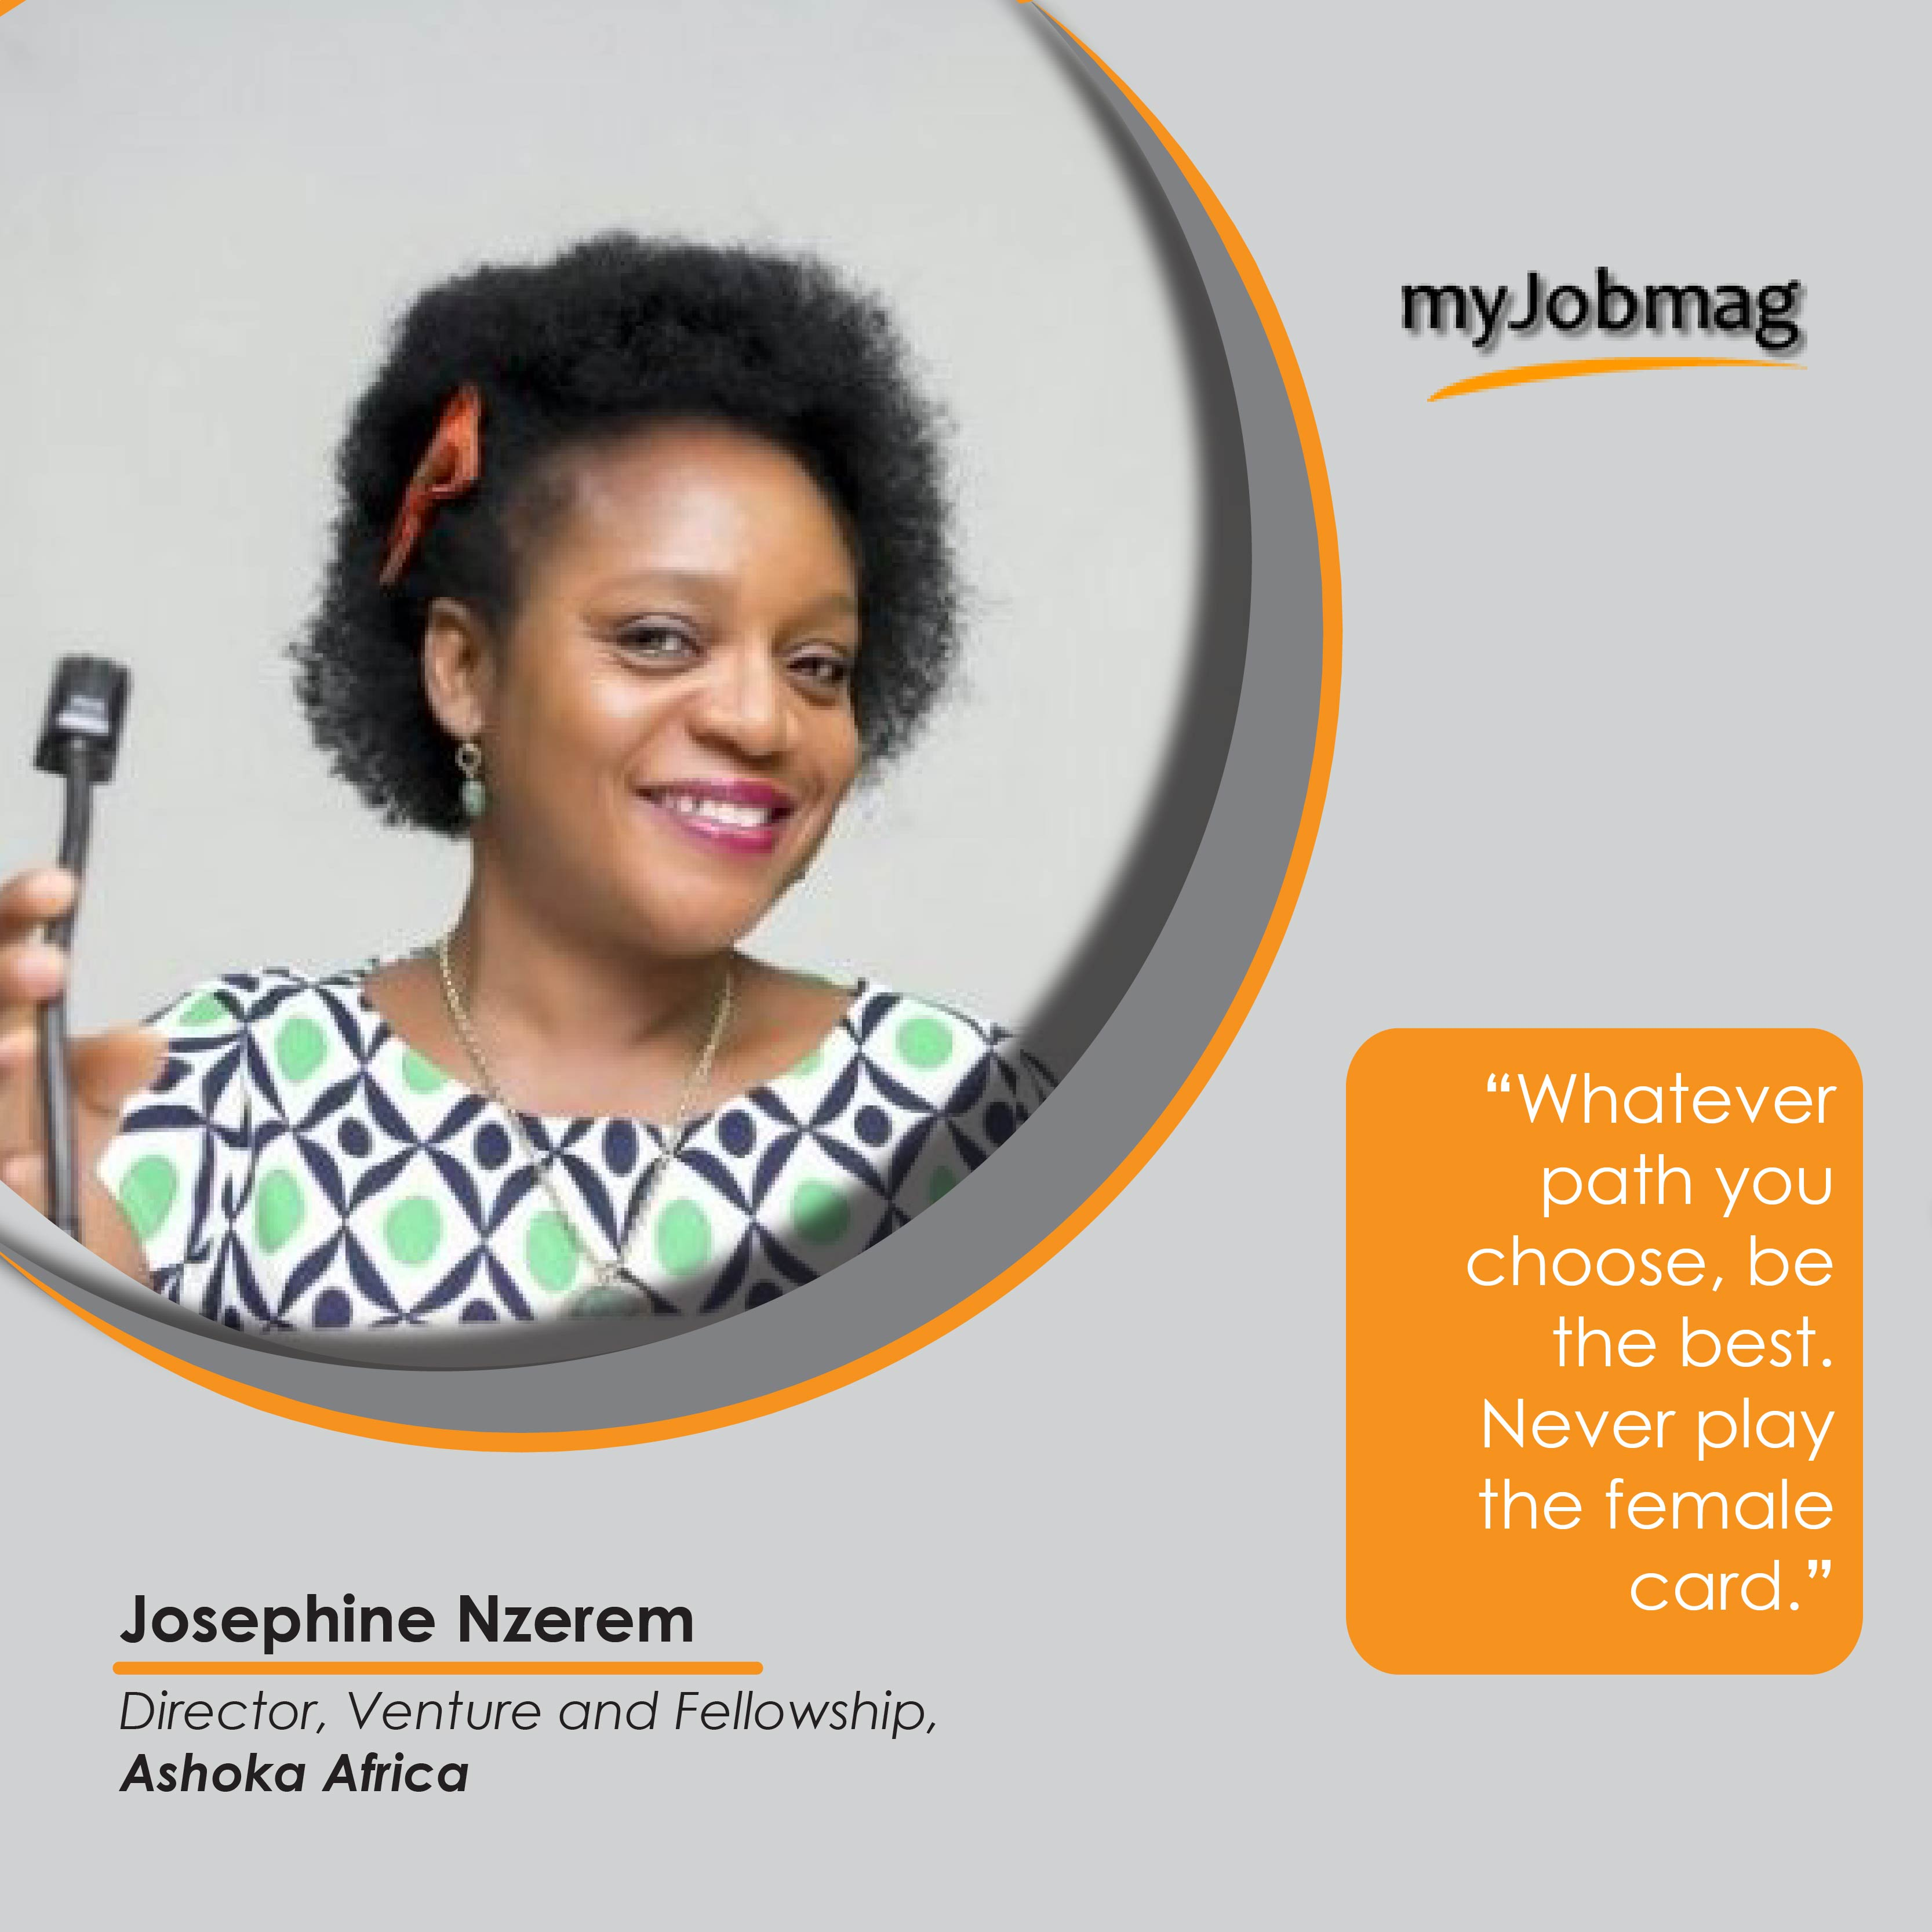 Josephine Nzerem career advice MyJobMag